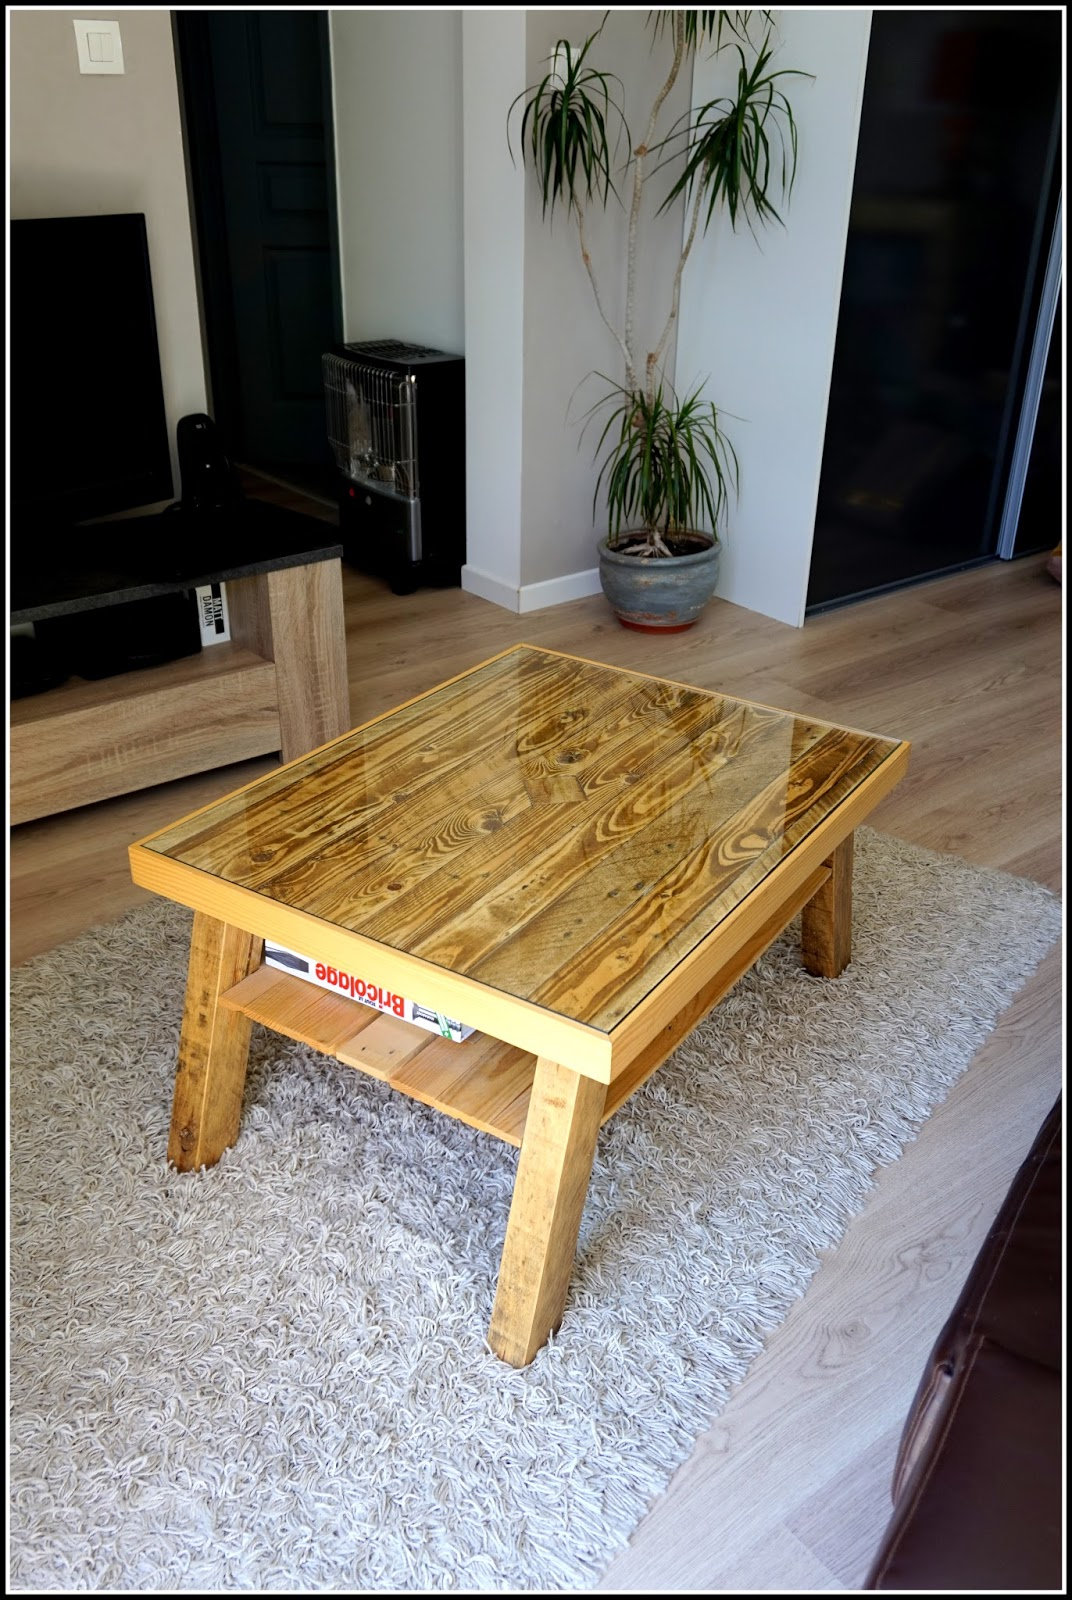 Comment faire une table basse en palette - Faire une table basse en bois ...